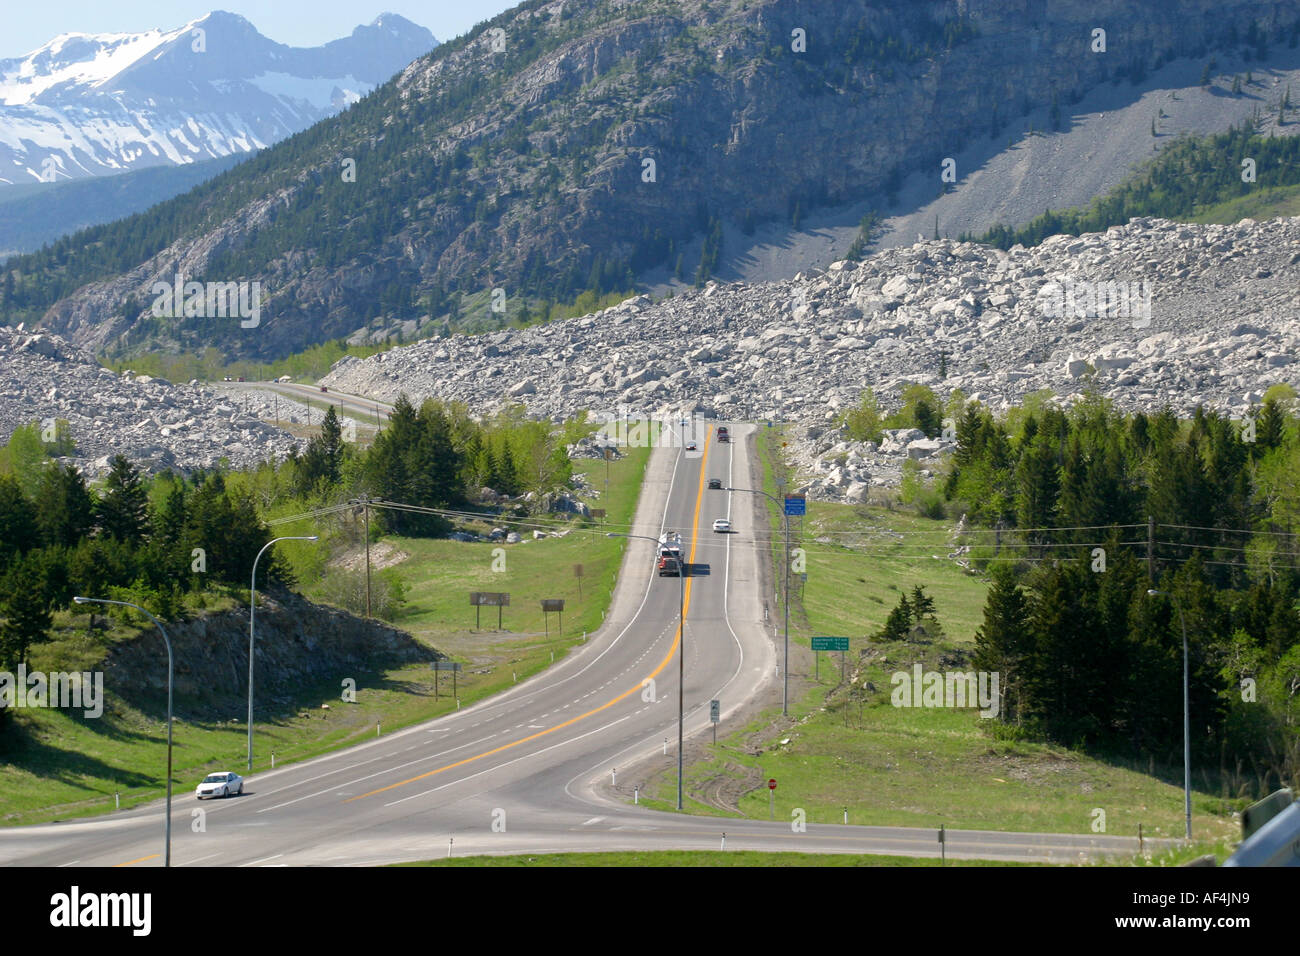 LANDSCAPE ;Roadway winding through the Canadian Rockies - Stock Image